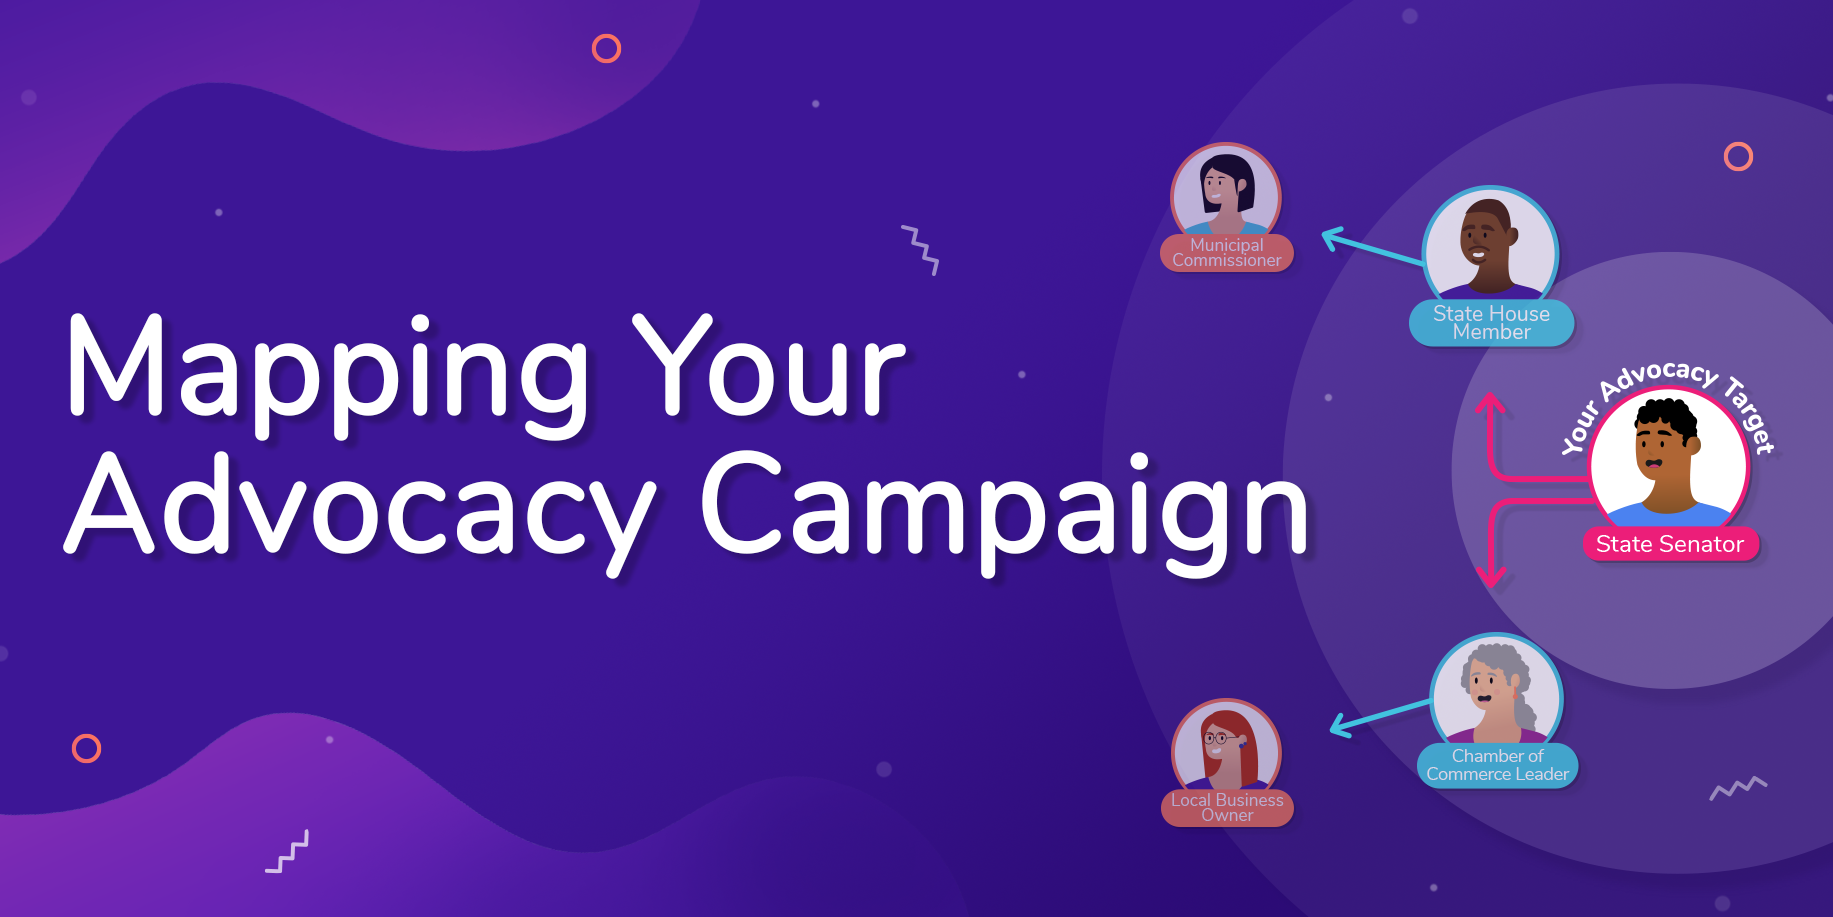 Mapping Your Advocacy Campaign